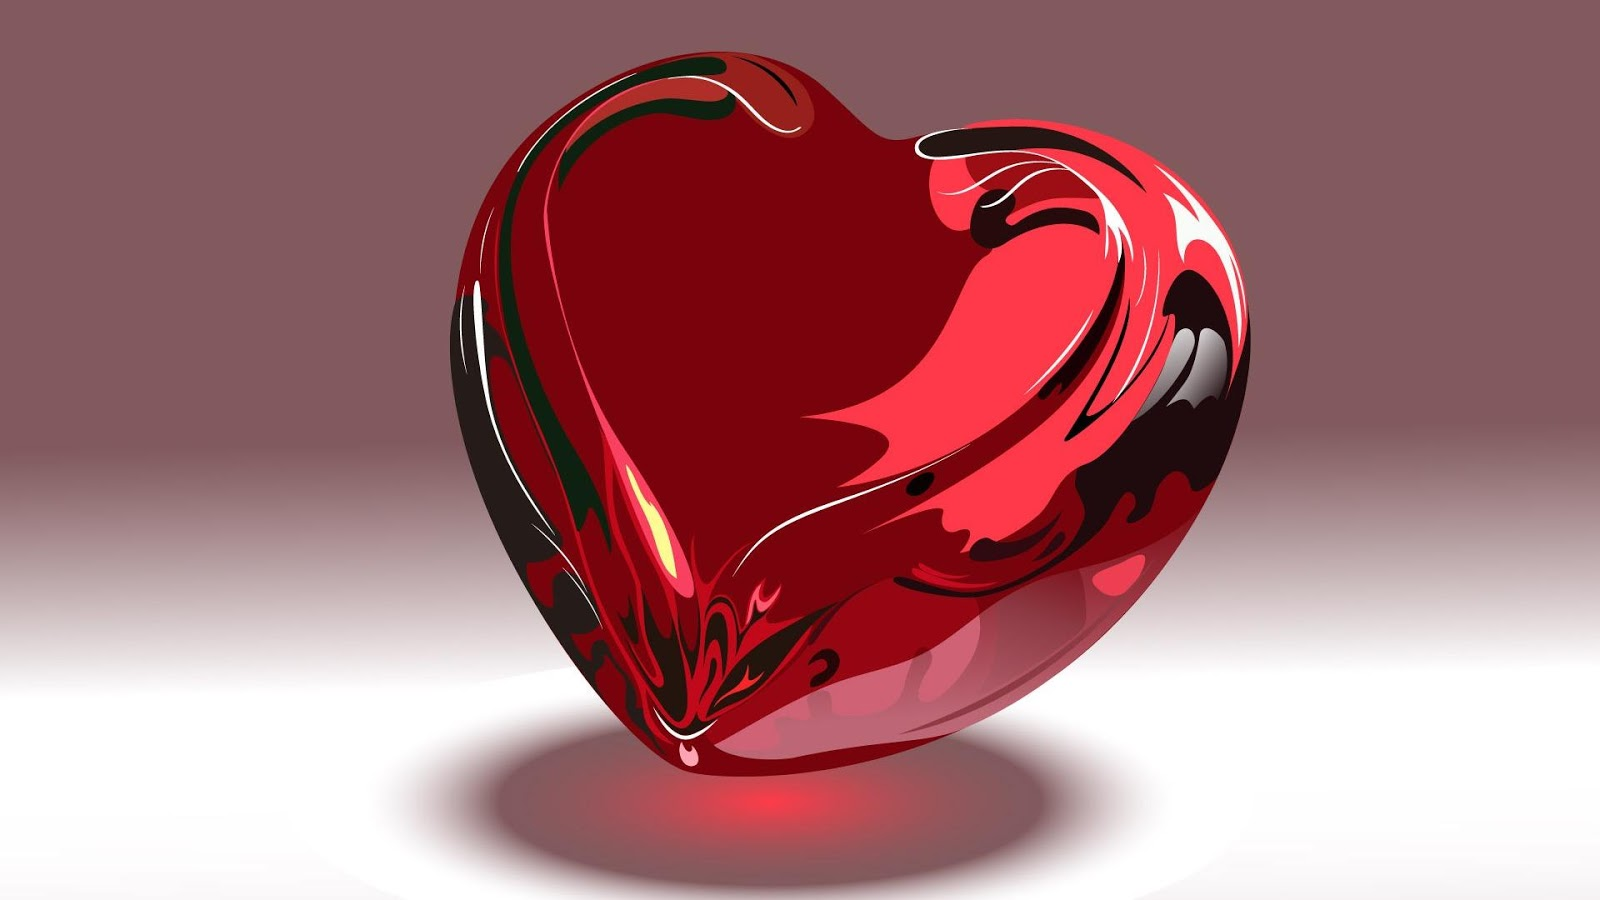 Google Images Love Wallpaper : 3D Romantic Love Wallpaper Android-Apps auf Google Play